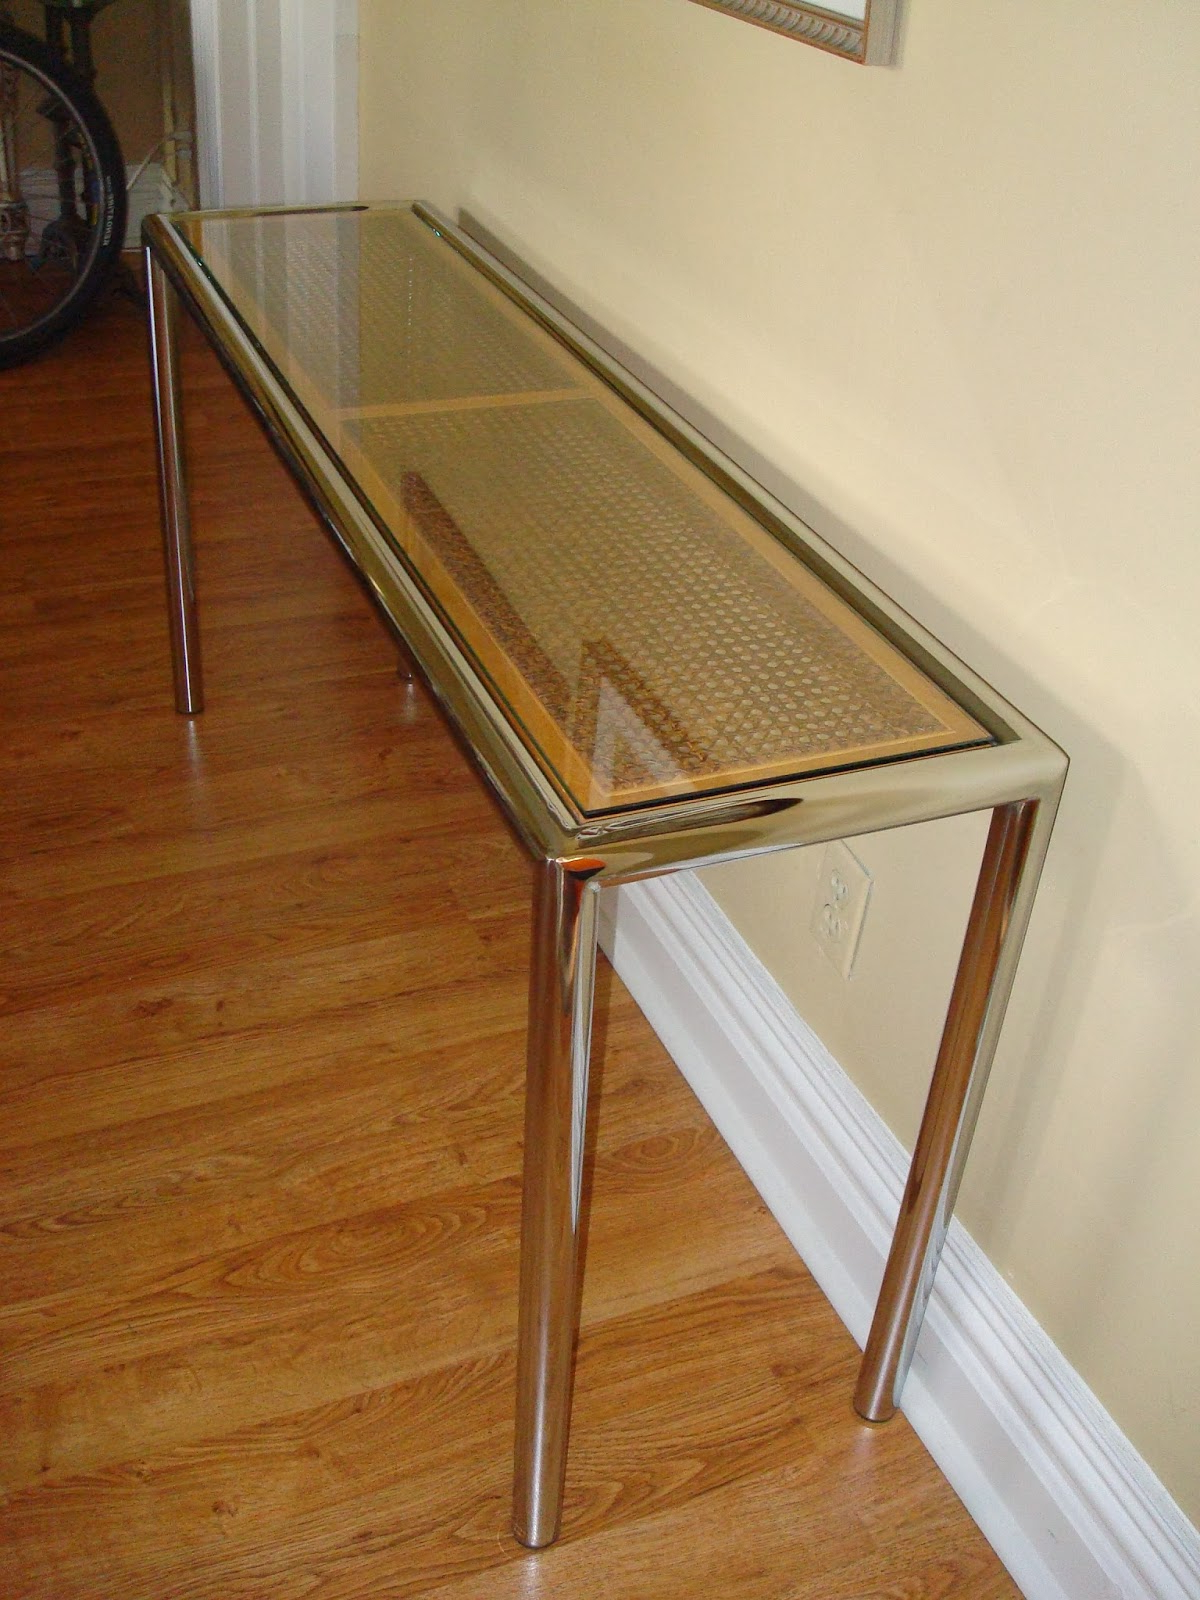 Preferred Era Antiques: 1970´s Milo Baughman Tubular Chrome Sofa/console Table Regarding Era Glass Console Tables (Gallery 13 of 20)